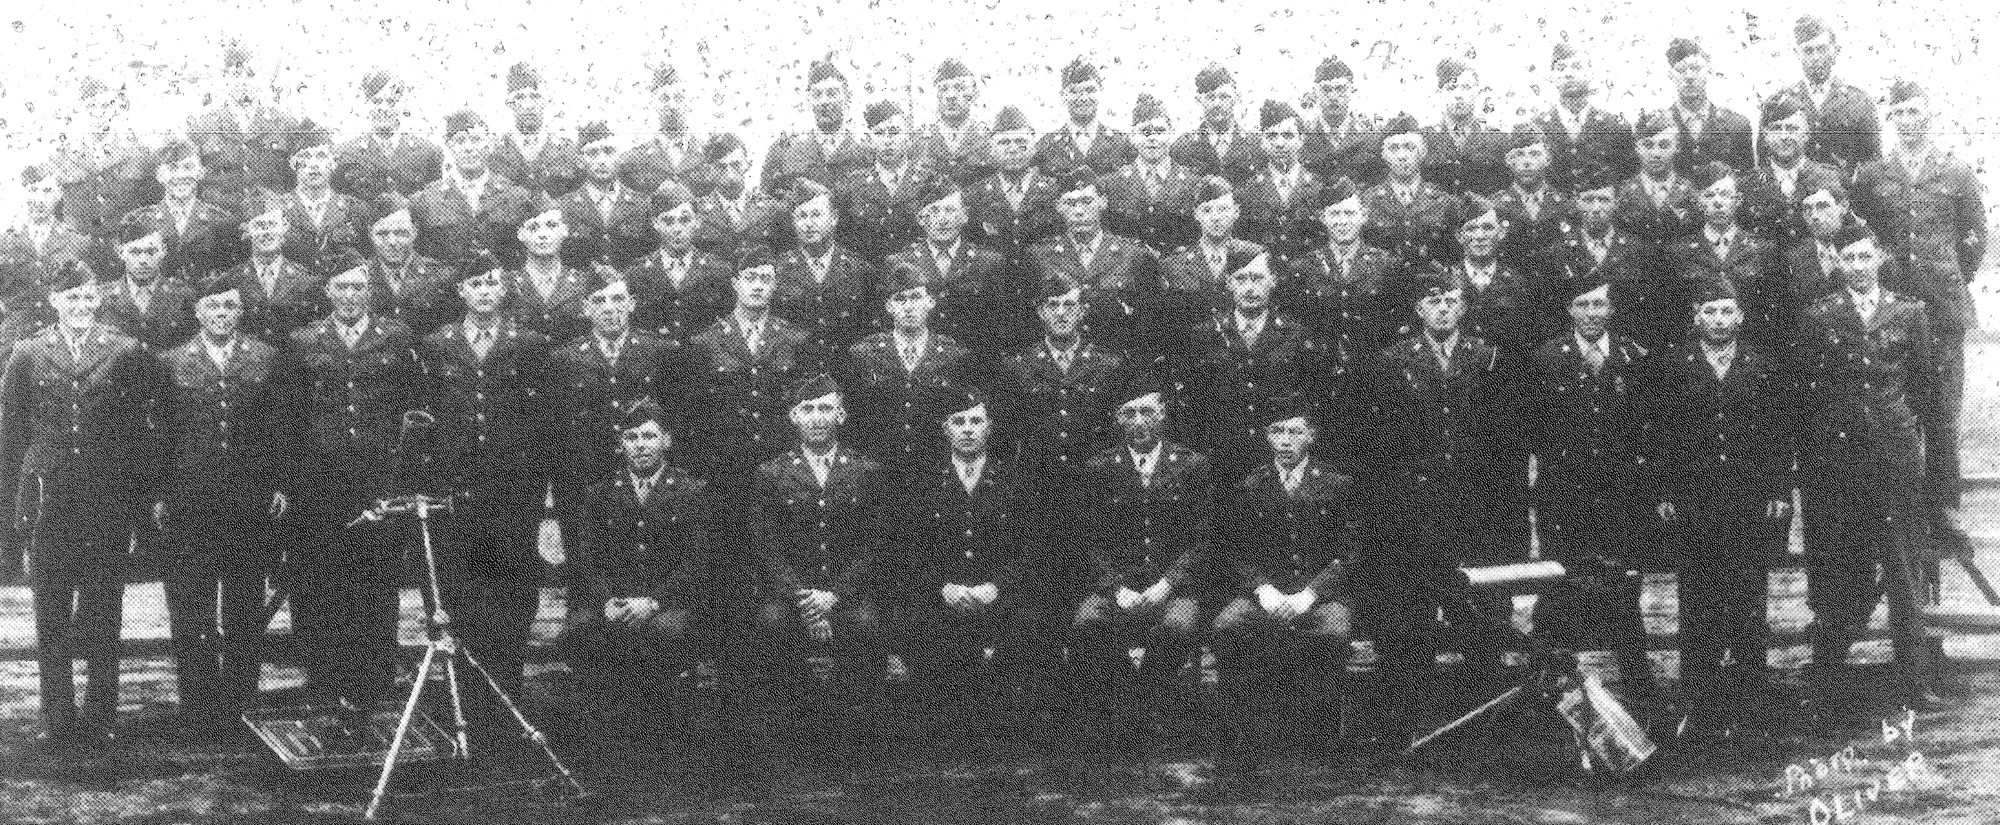 Sumterites played key roles in D-Day invasion | The Sumter Item